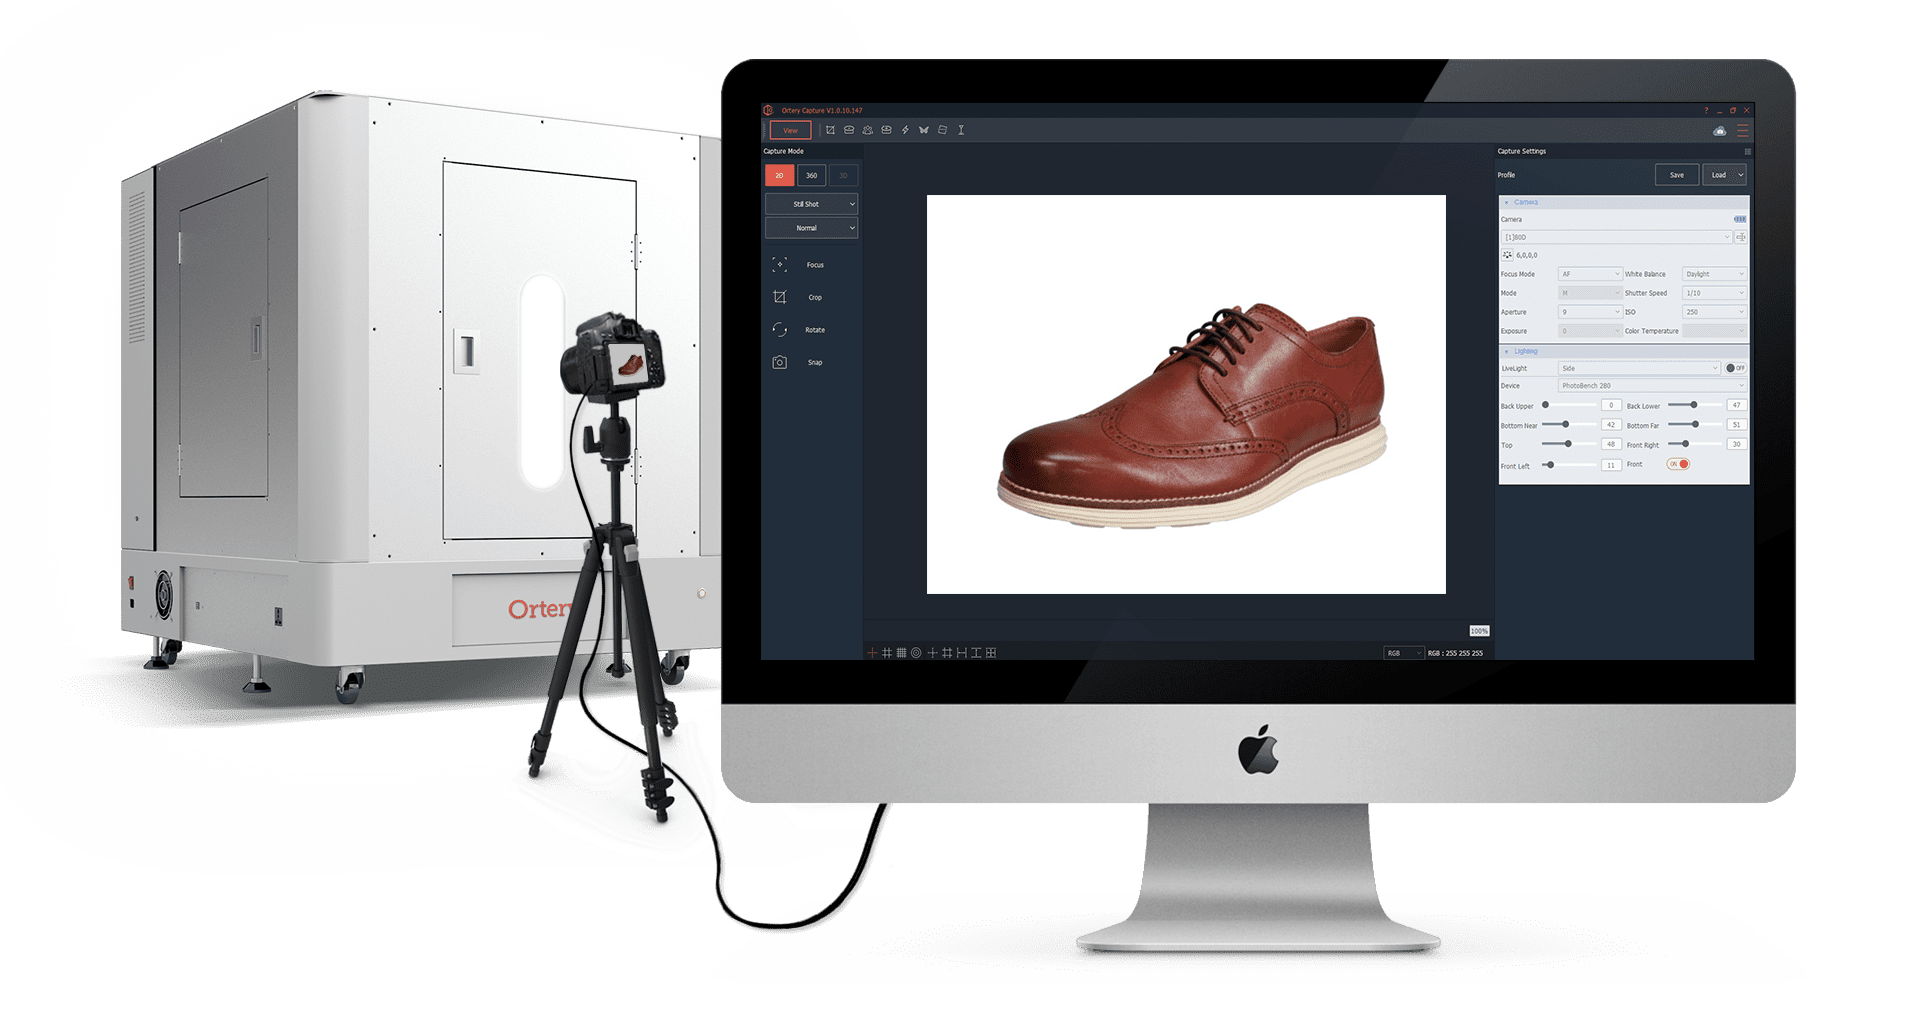 A demonstrations of how Ortery product photography hardware and software works together to make Amazon photography easy.